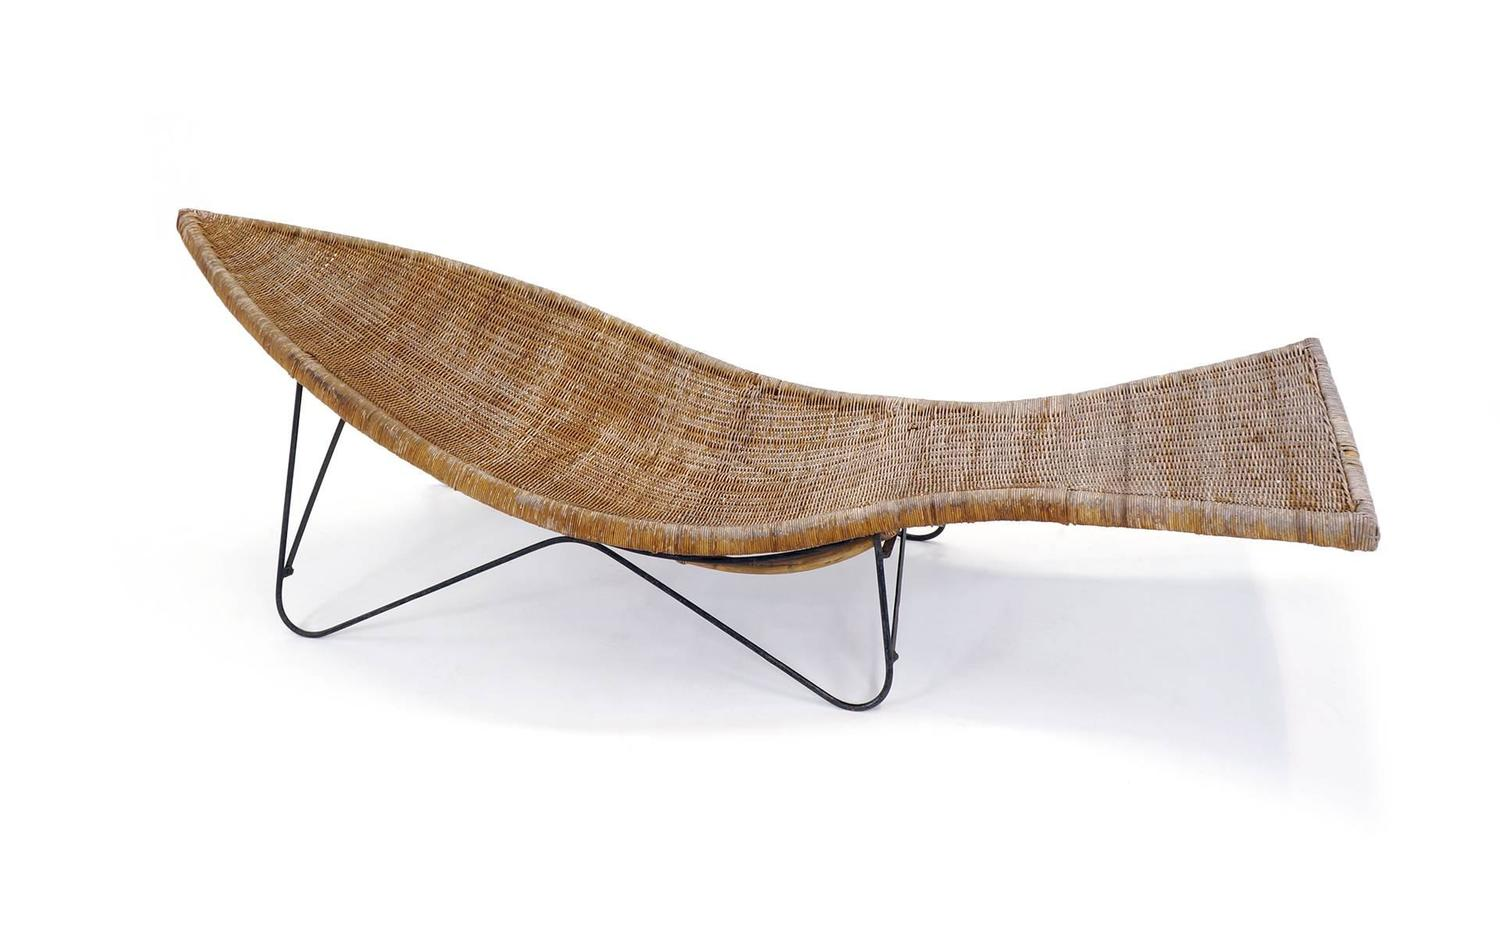 Satori s shaped patio lounger new s shaped rattan chaise for S shaped chaise lounge chairs